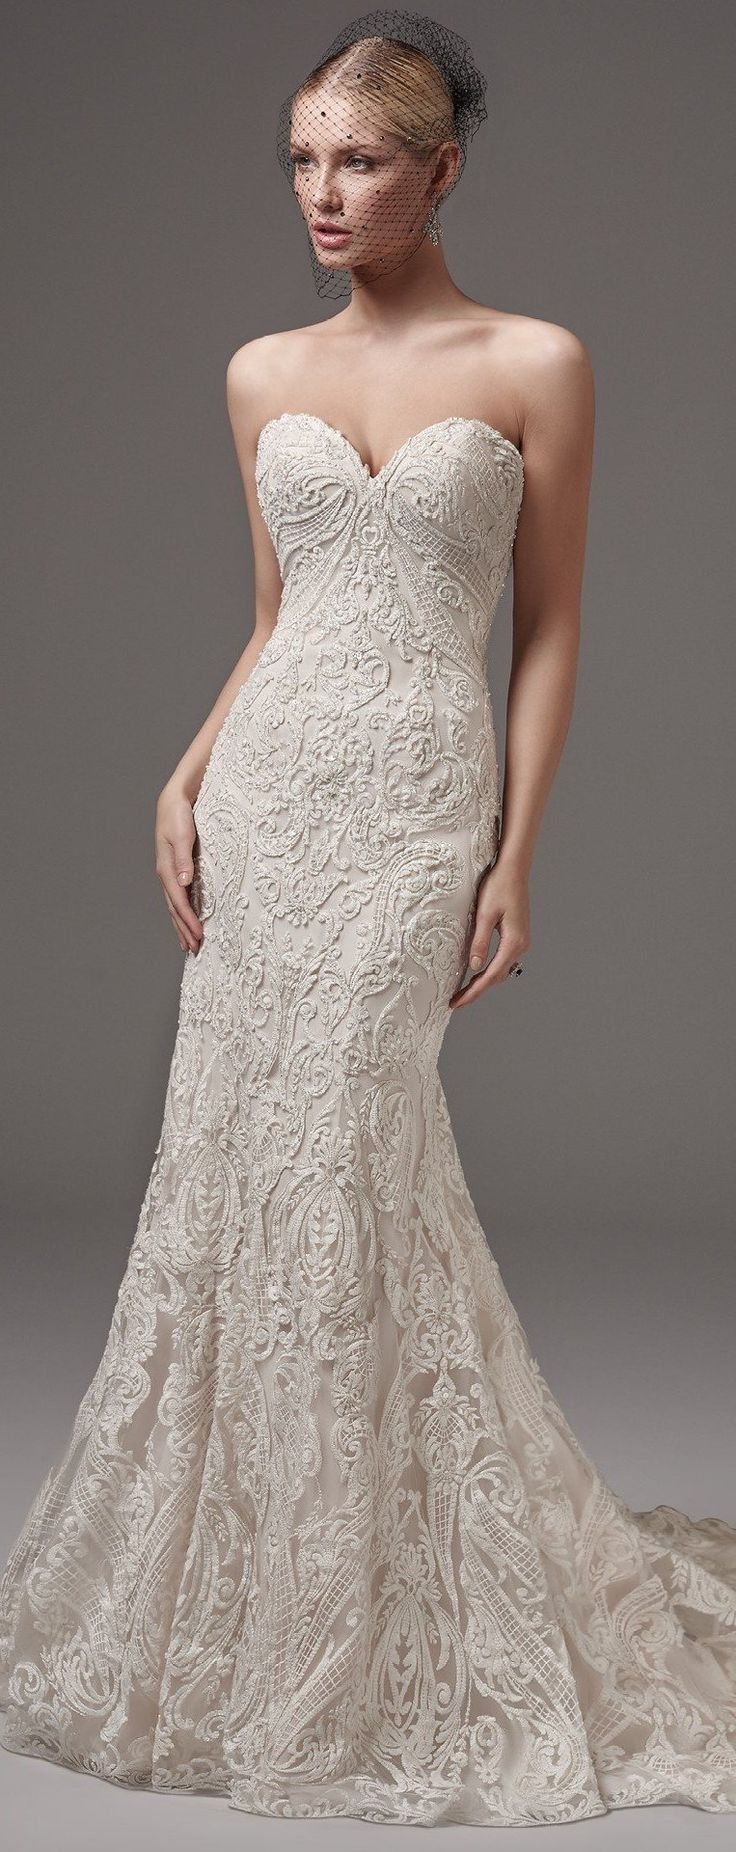 Best 2417 Wedding Dress, Ring, Ideas & Updo\'s ideas on Pinterest ...